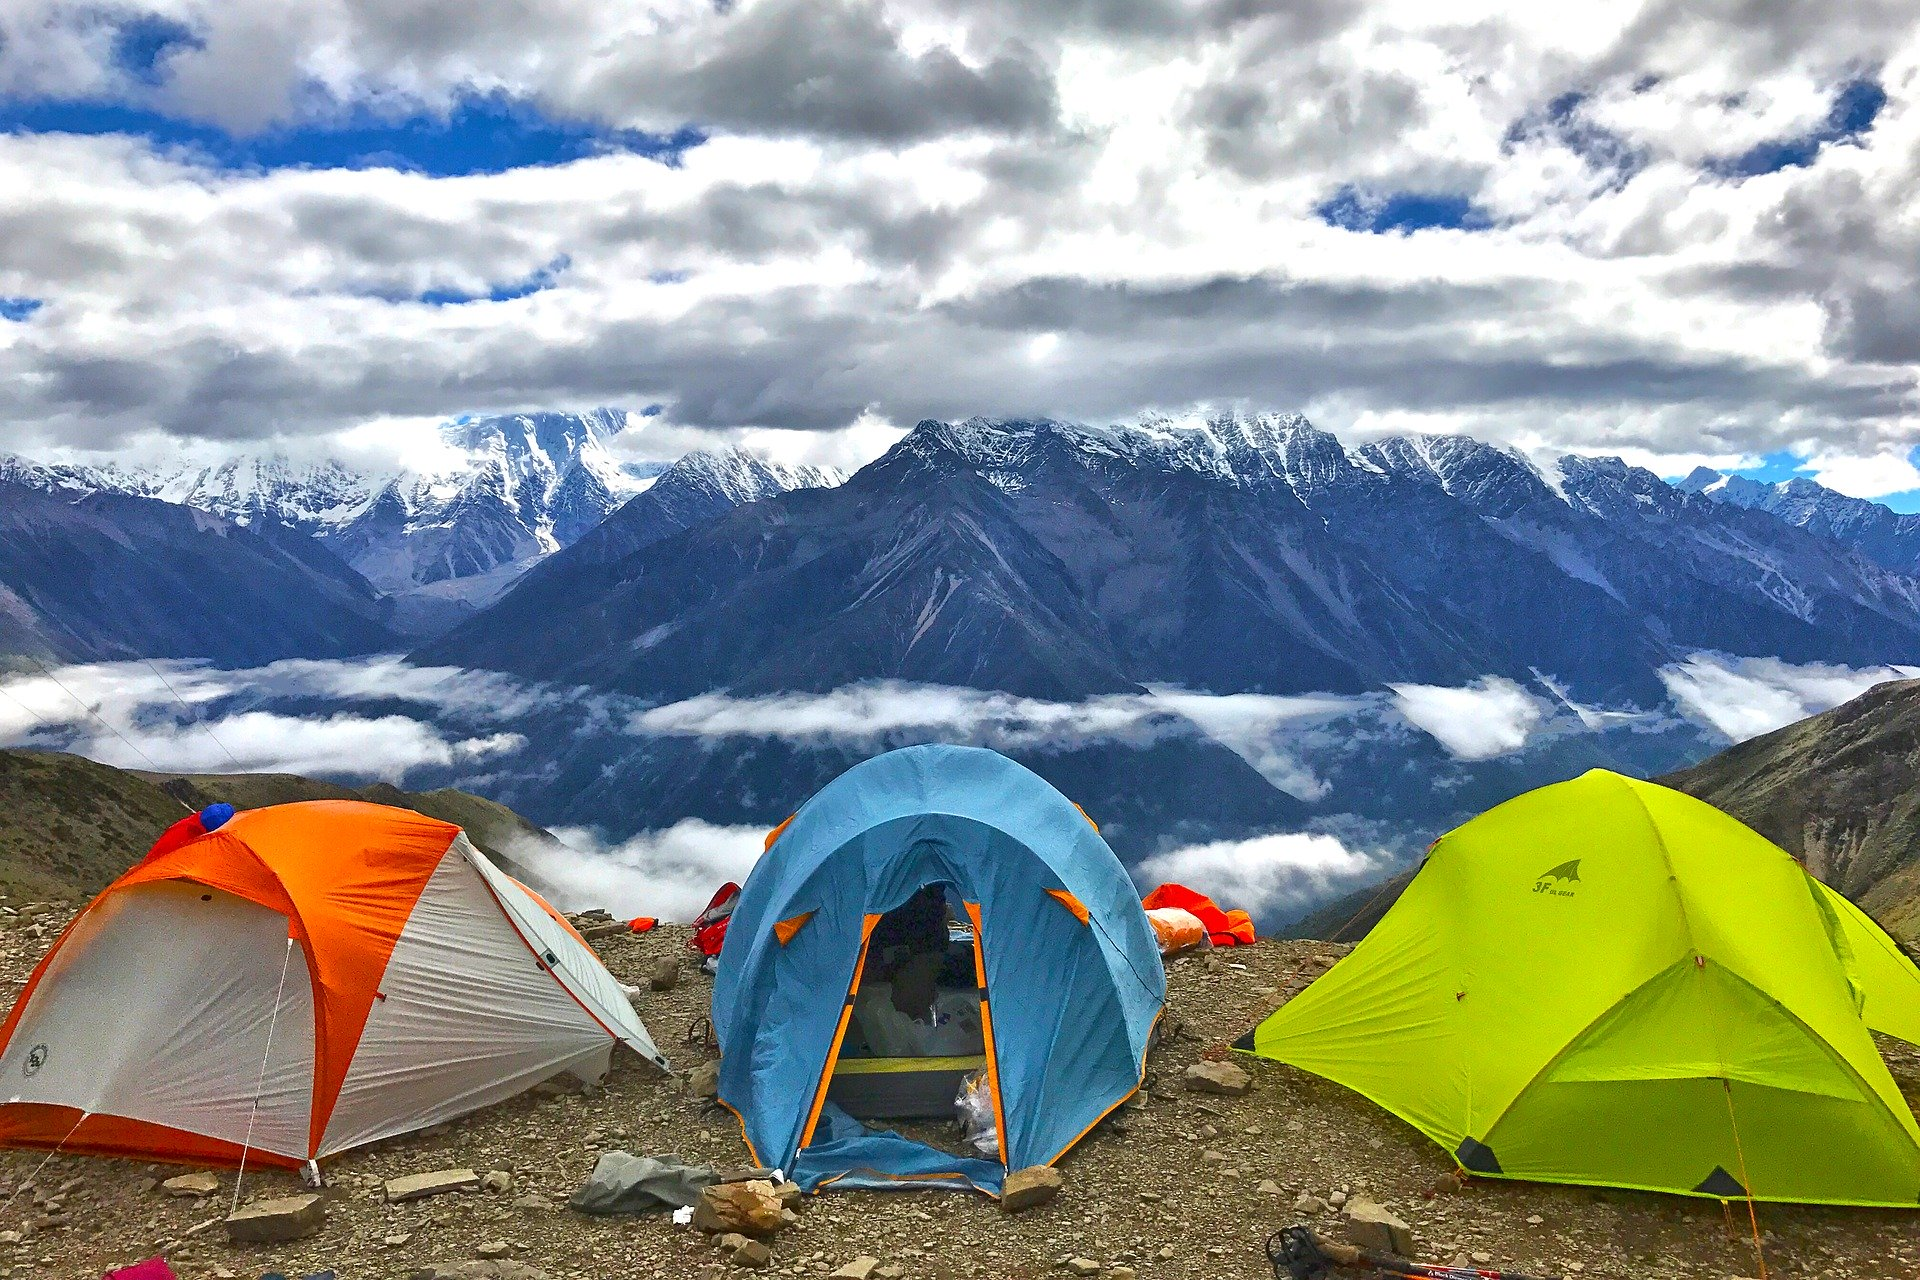 Outdoor Tenting in hilly areas